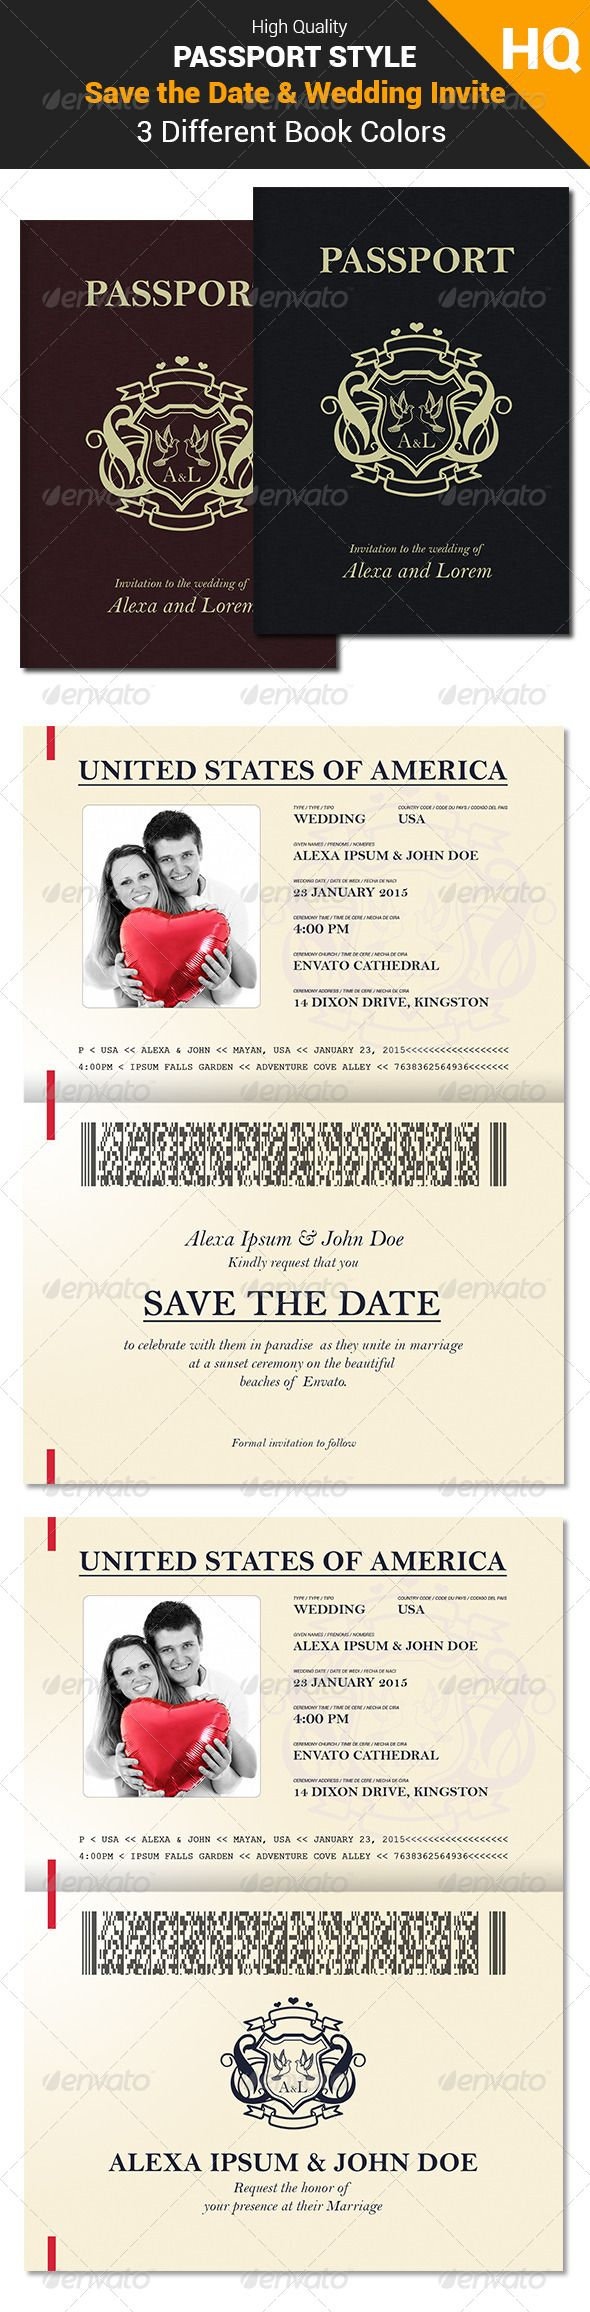 17 best images about wedding invitations on pinterest for Save the date passport template